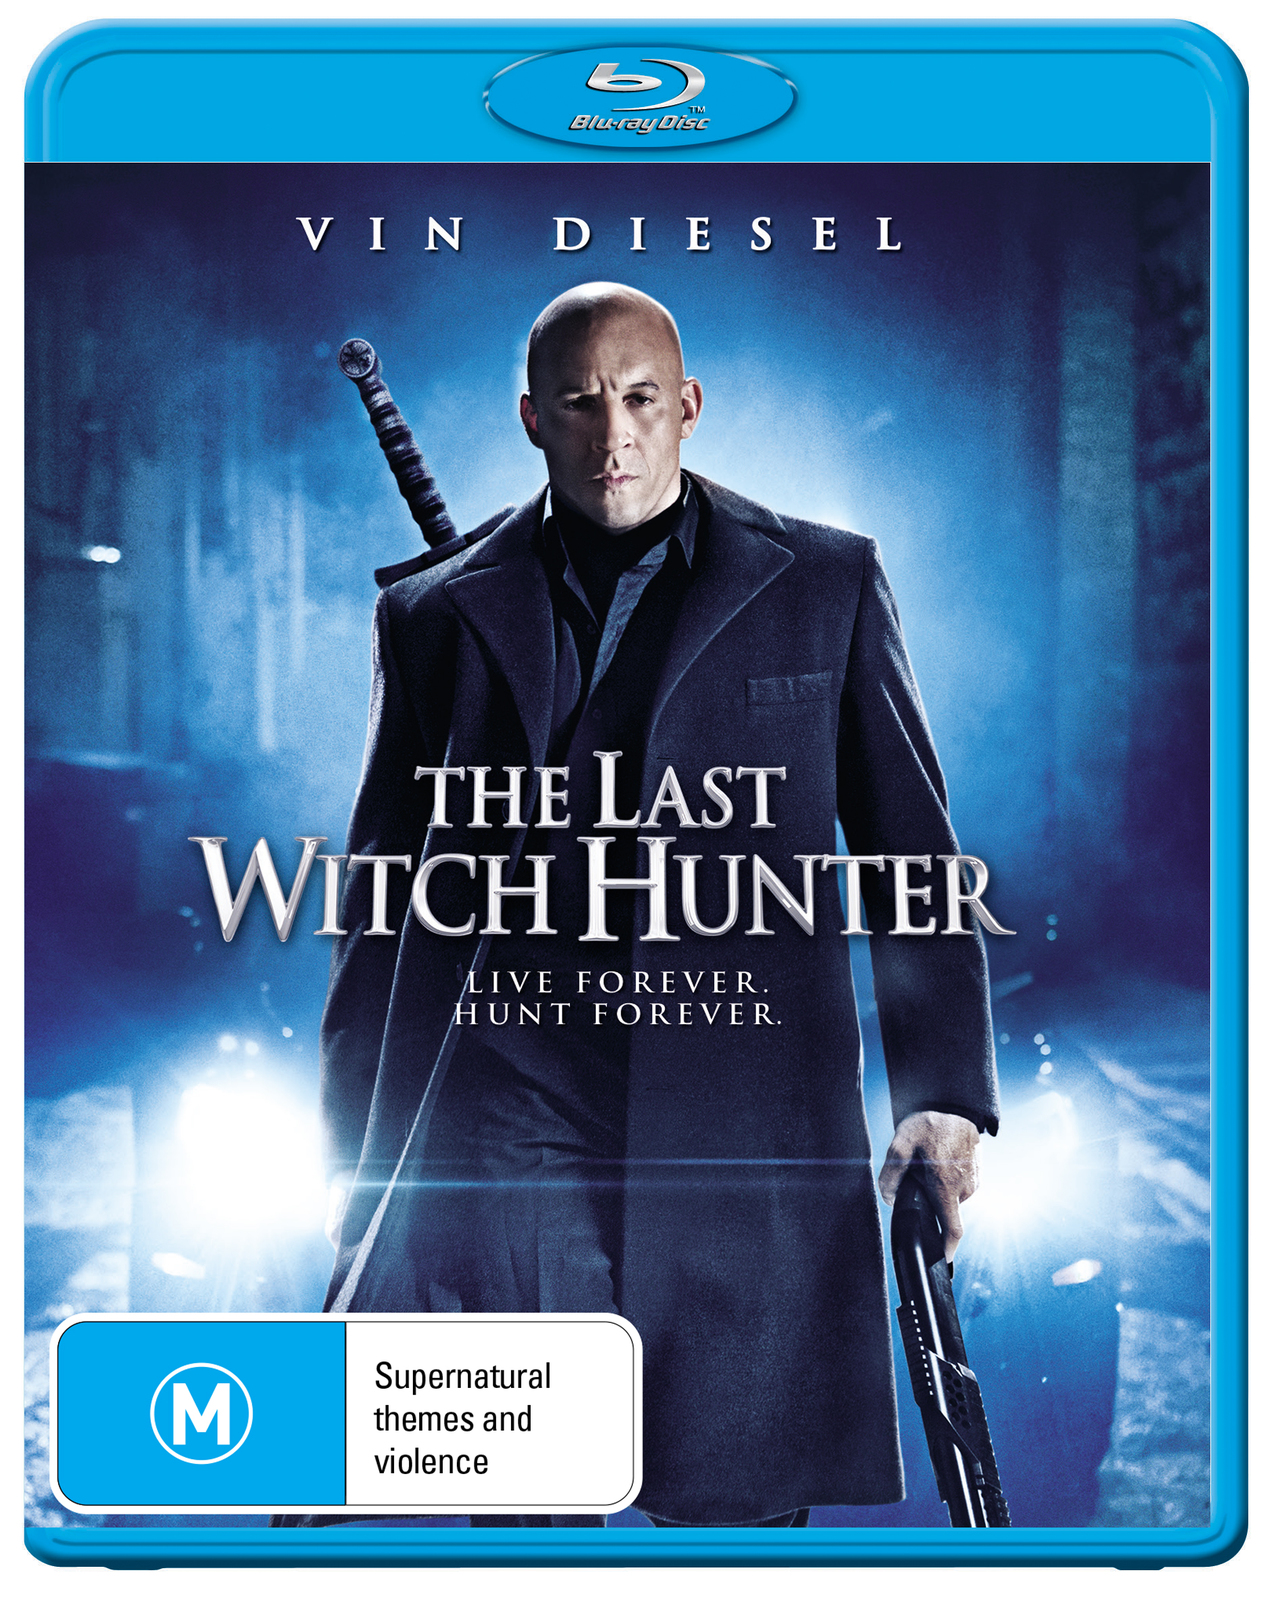 The Last Witch Hunter on Blu-ray image